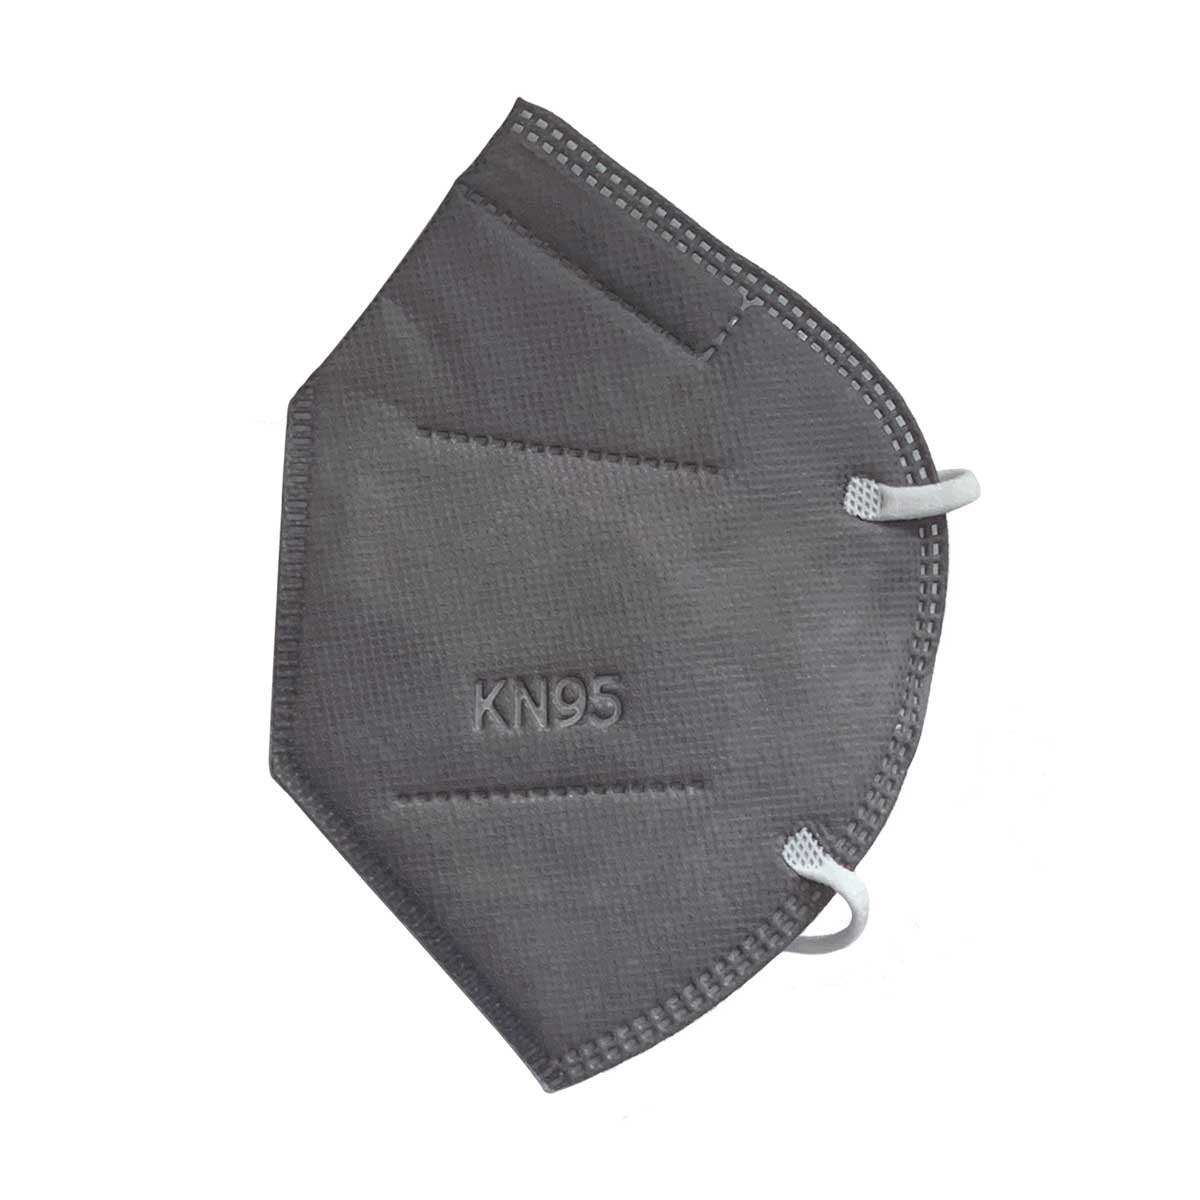 Grey KN95 Protective Face Masks (20 Pack) - Think360 Inc